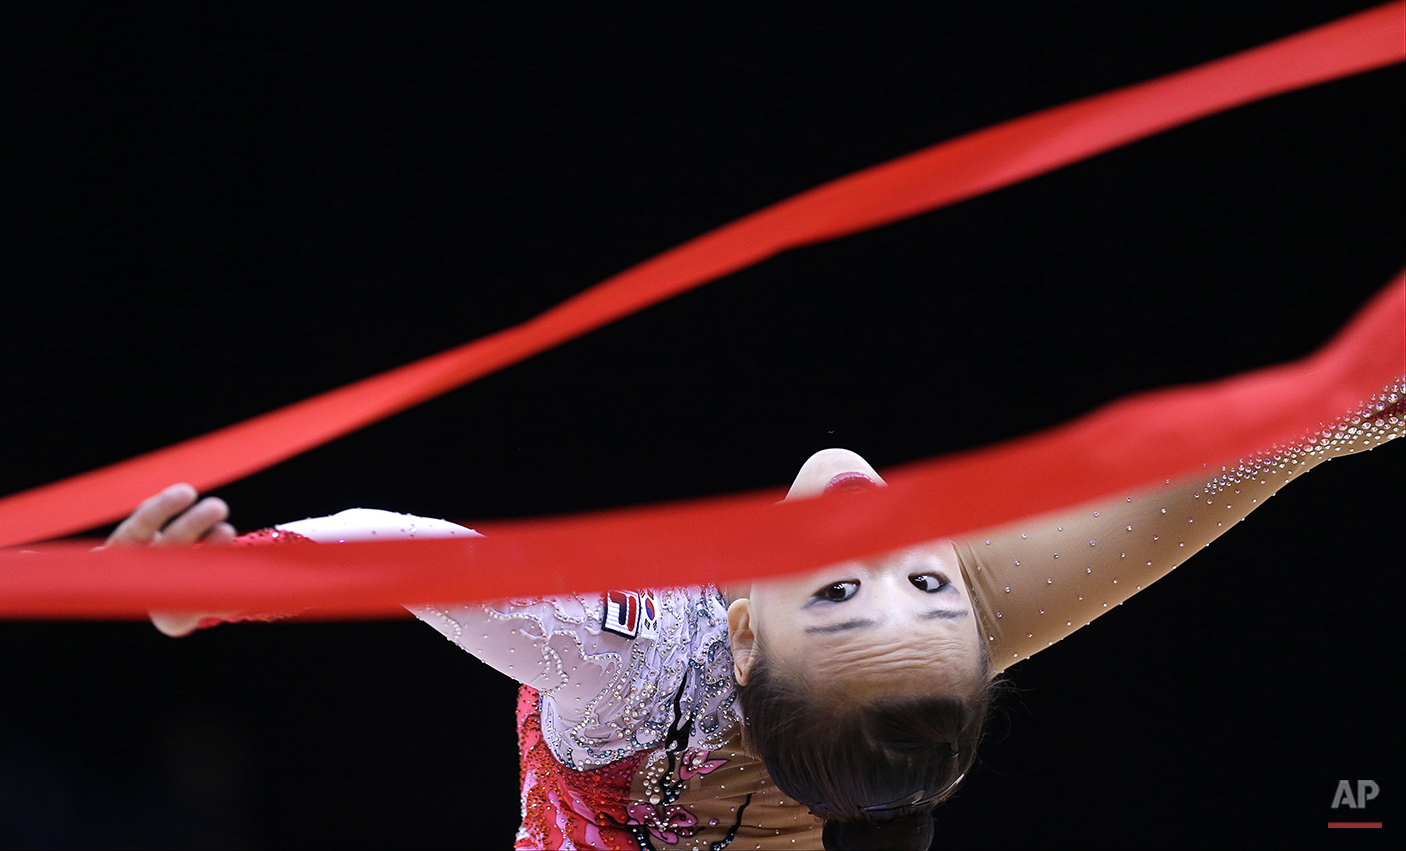 South Korea's Son Yeon-jae performs during the rhythmic gymnastics individual all-around qualifications  at the 2012 Summer Olympics, Friday, Aug. 10, 2012, in London. (AP Photo/Julie Jacobson)